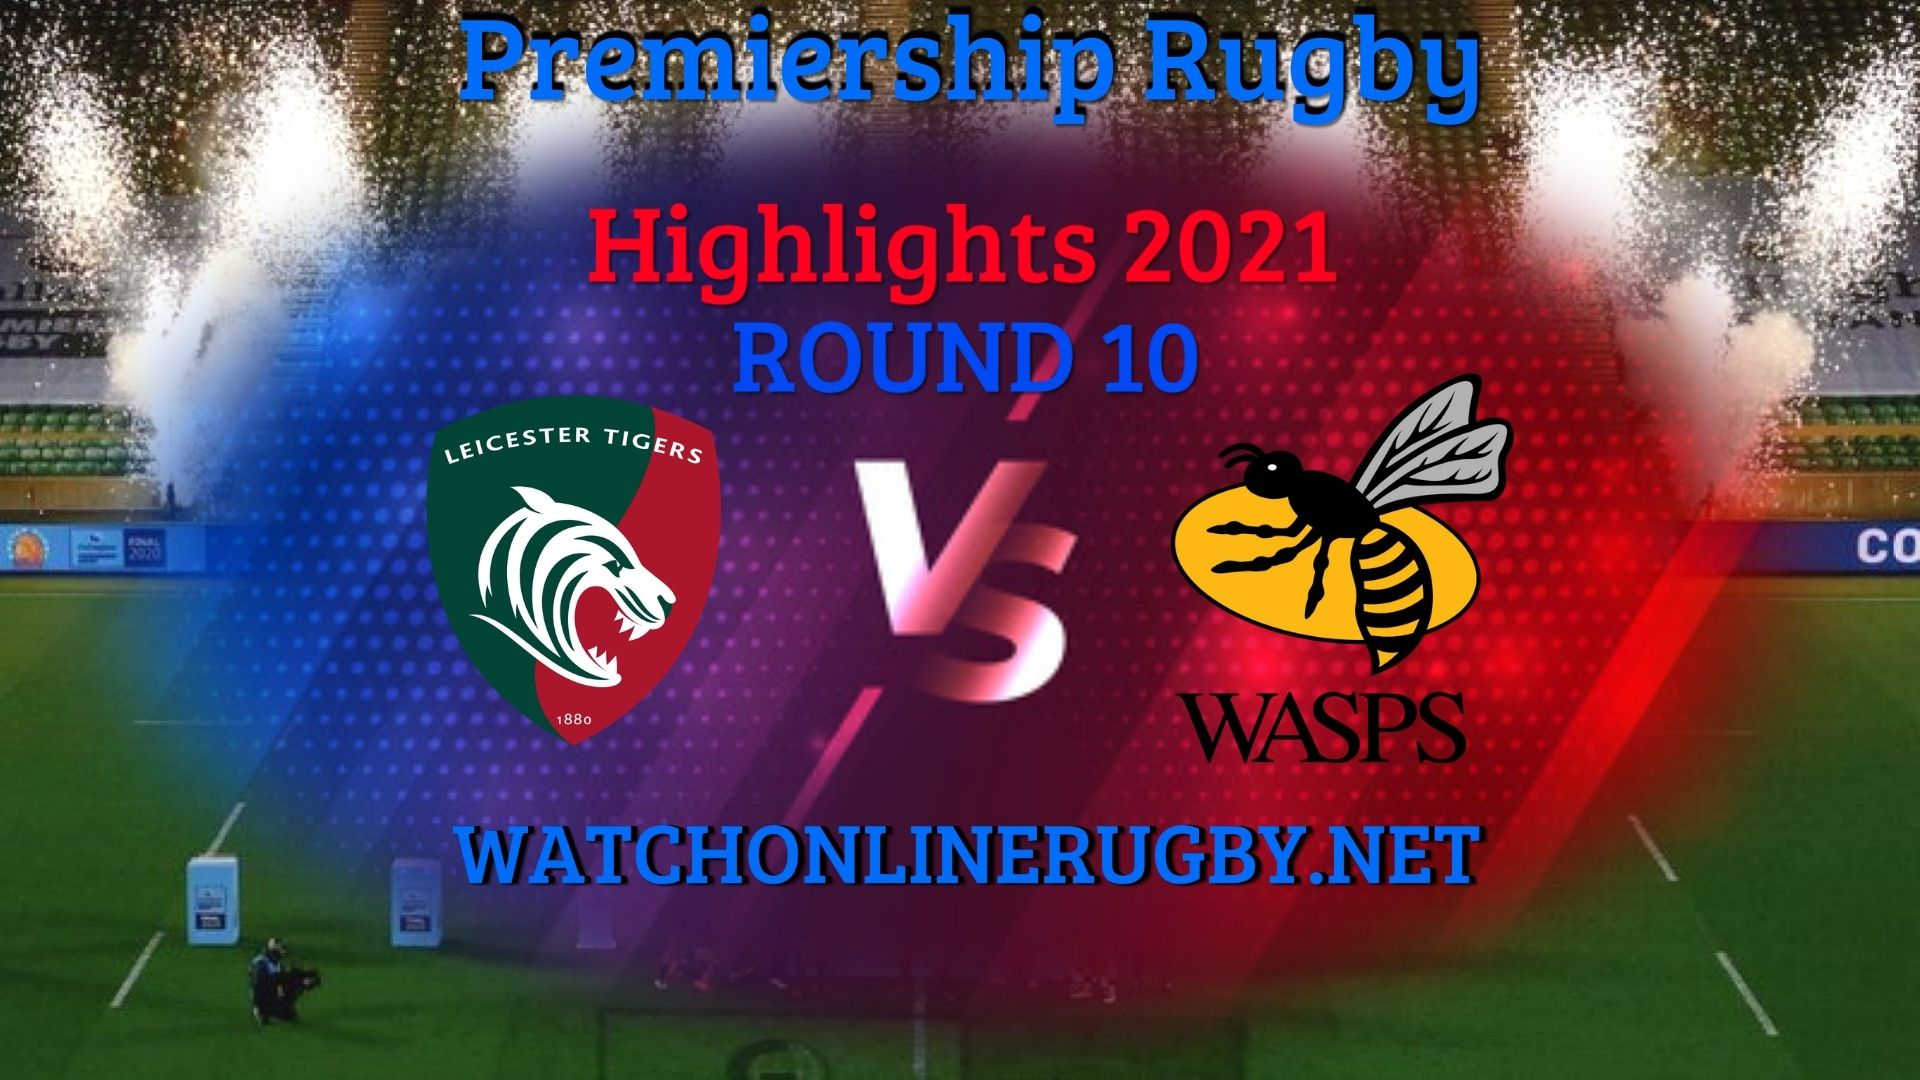 Leicester Tigers Vs Wasps Premiership Rugby 2021 RD 10